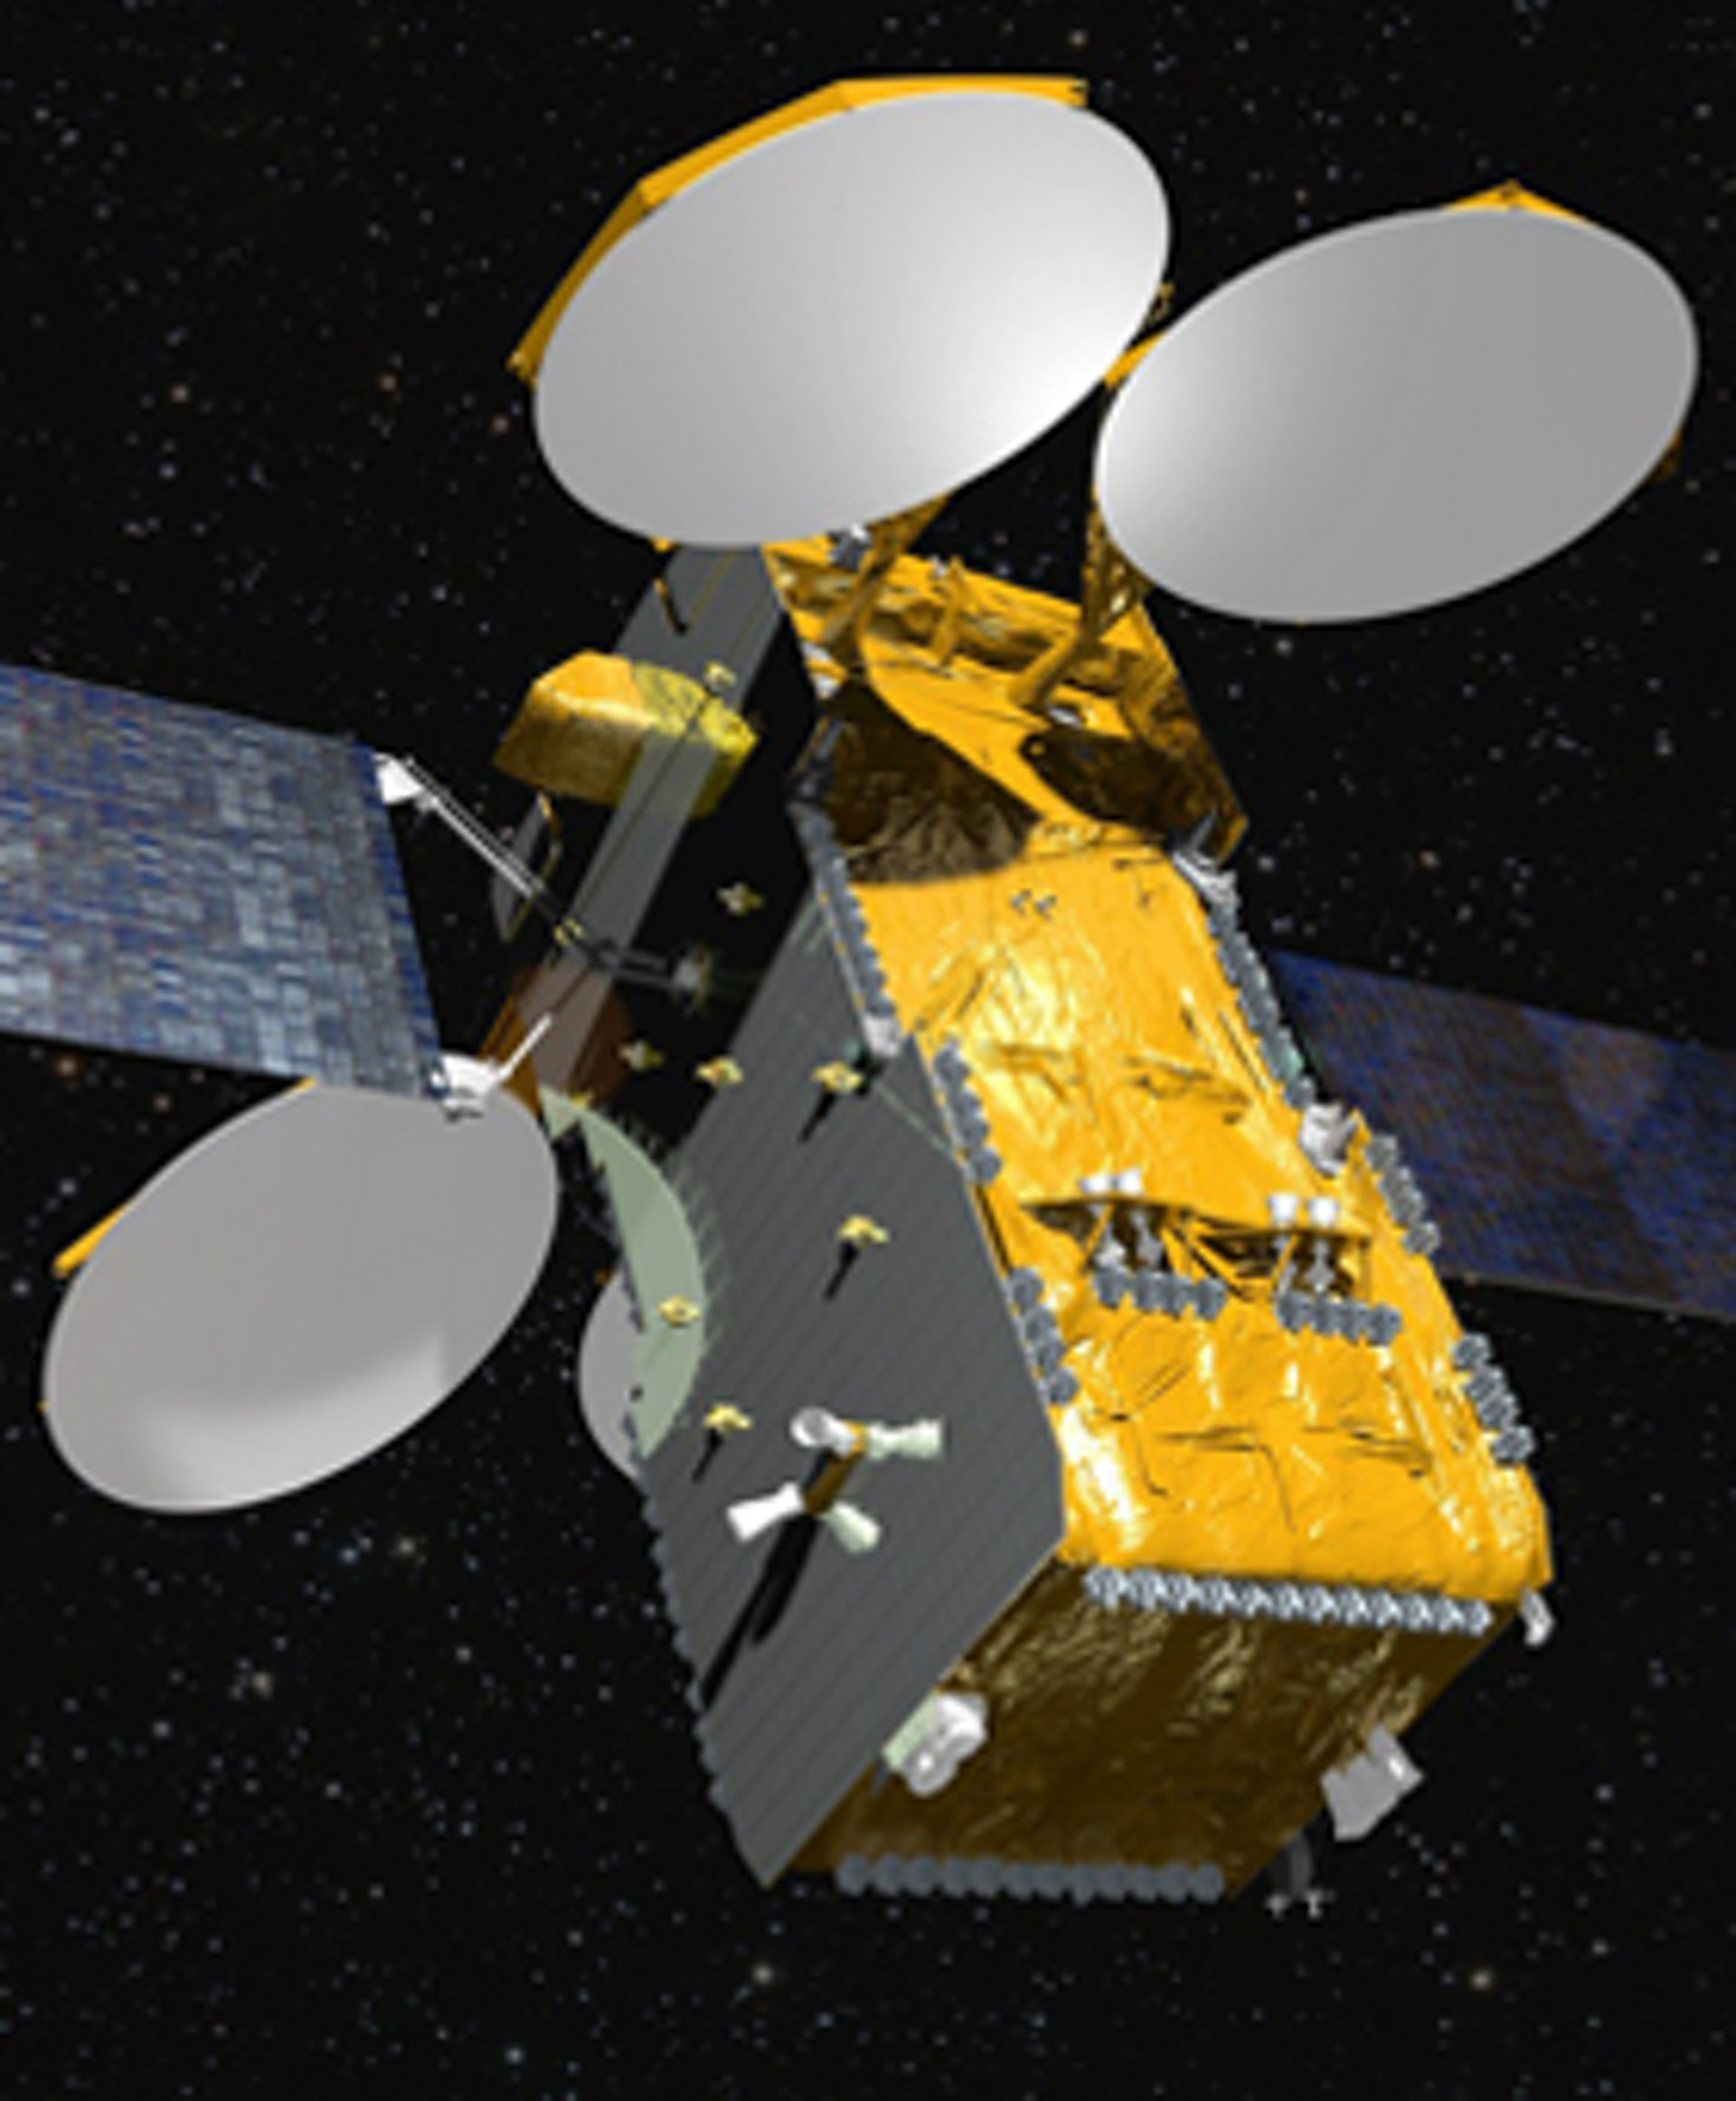 DirecTV 15 telecommunication satellite